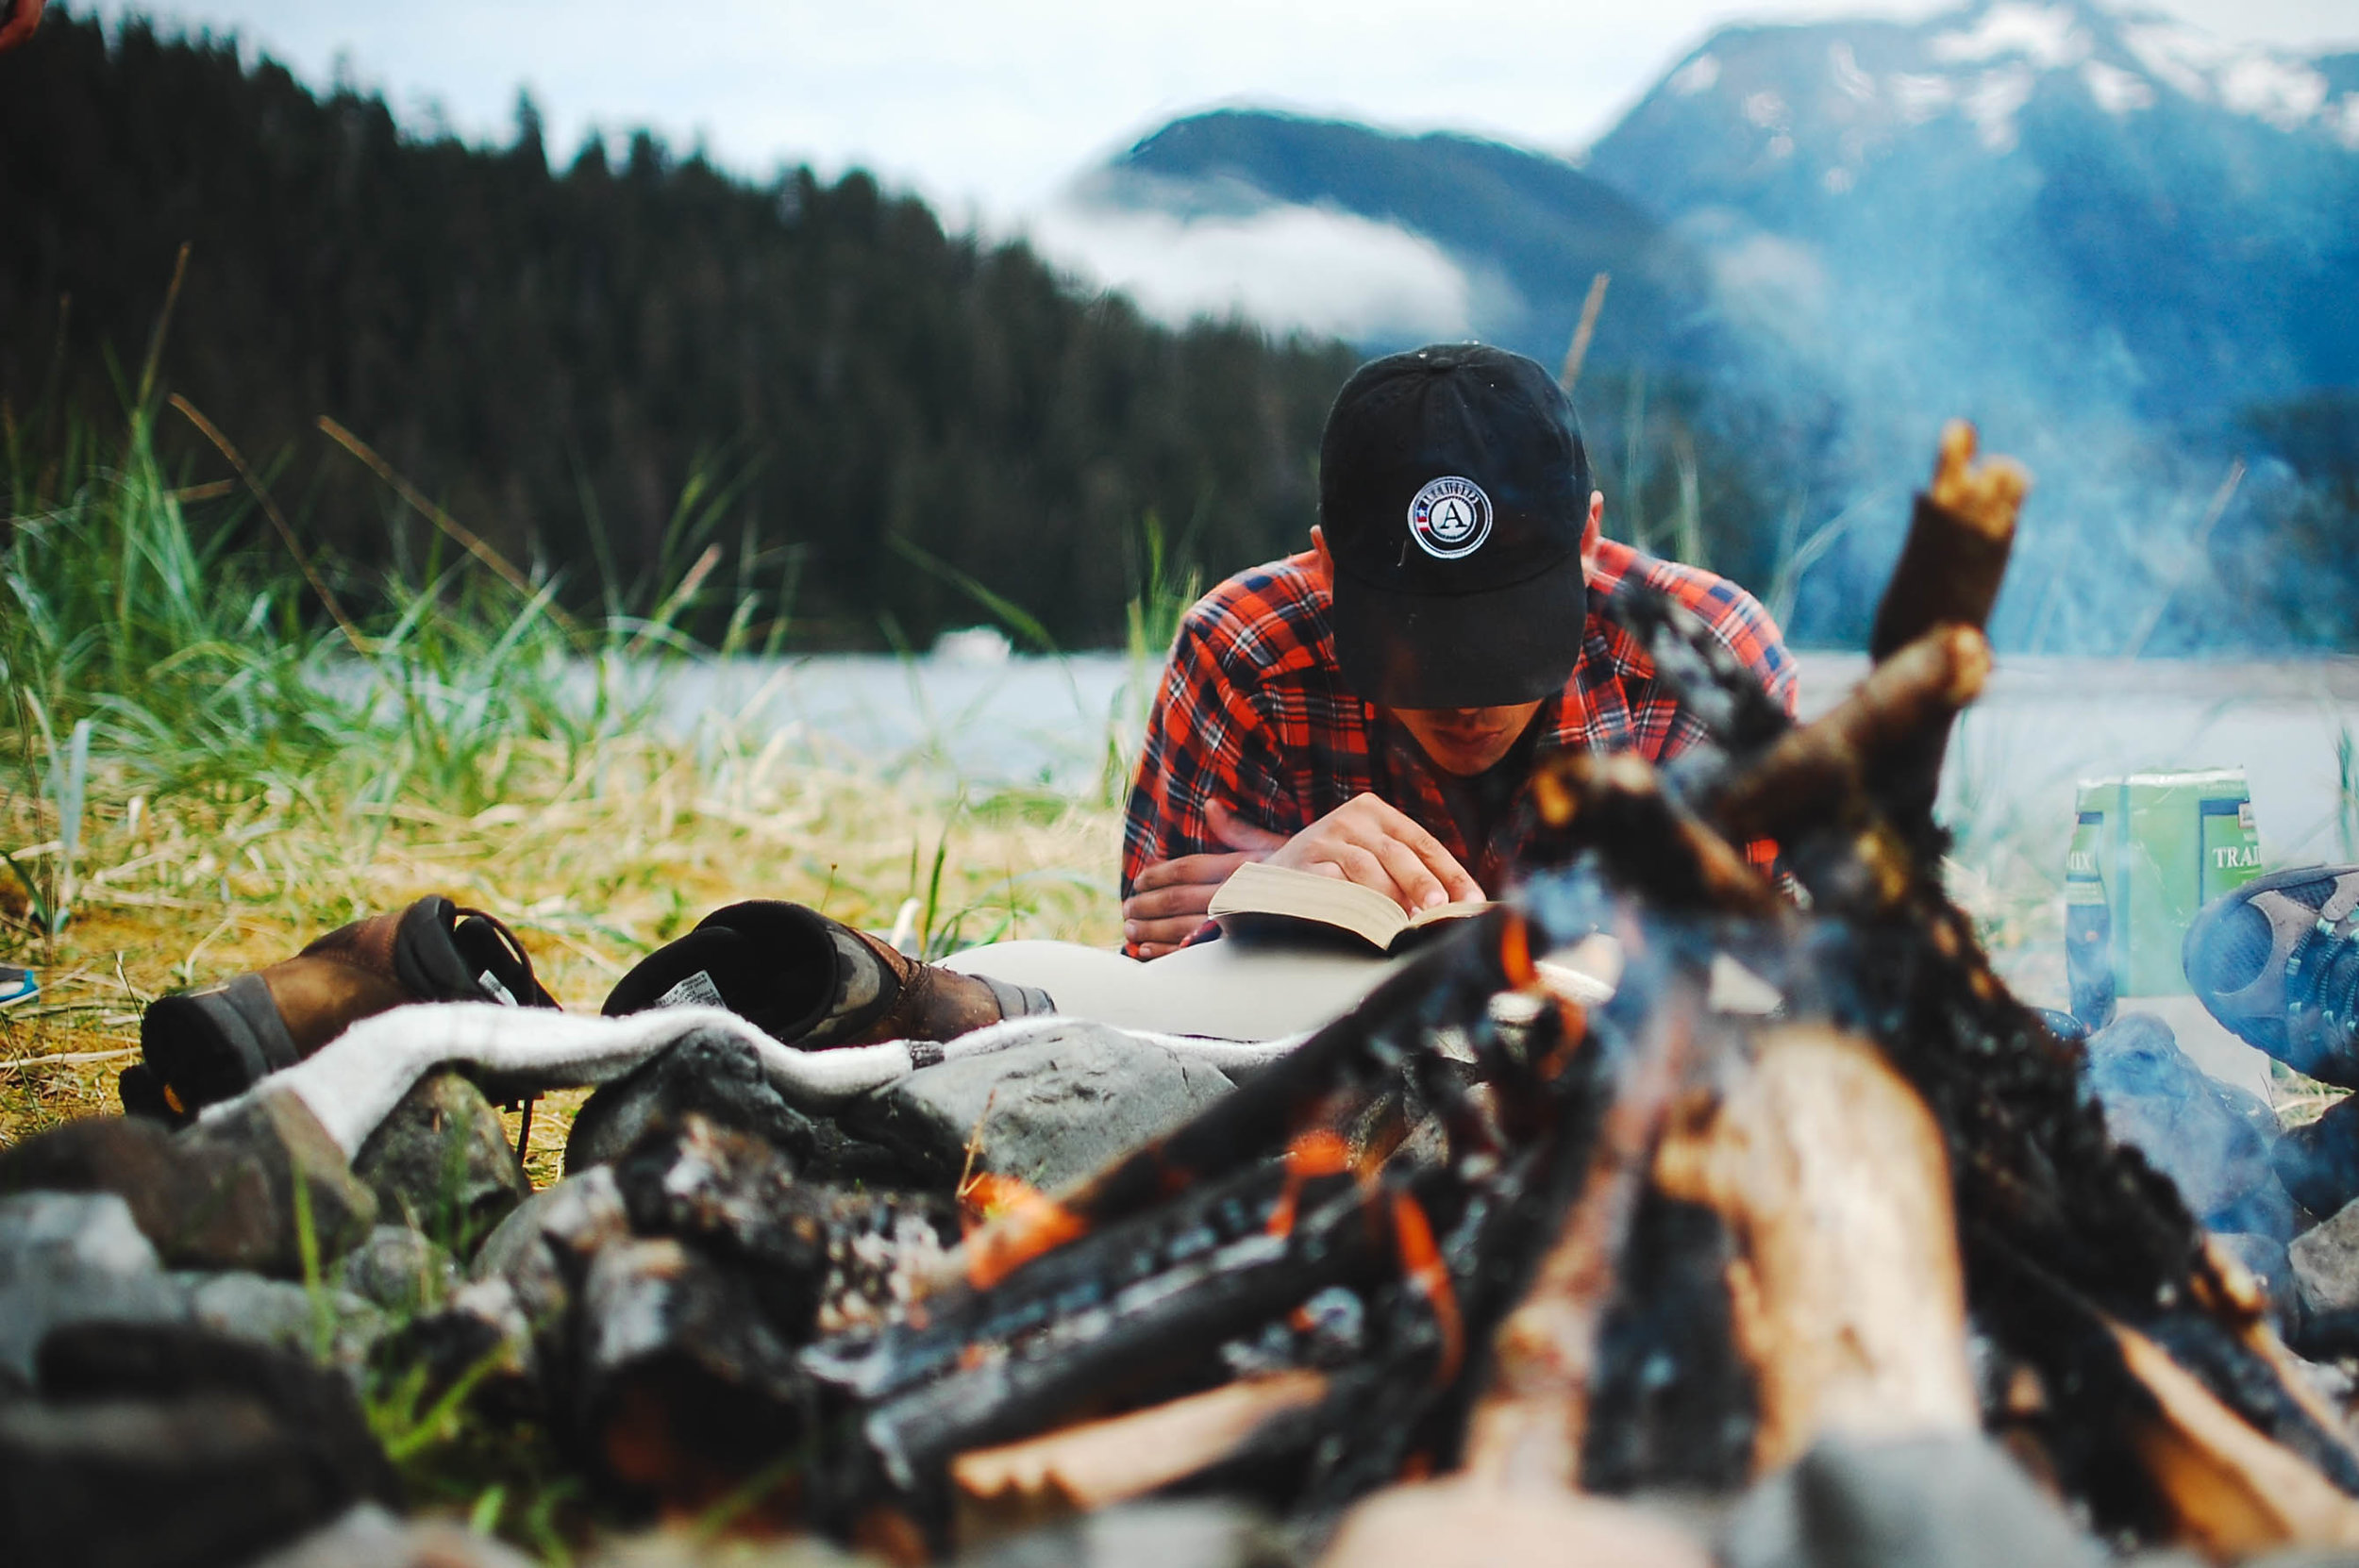 N. dries his shoes and reads by the fire after jumping into the ocean in southeast Alaska